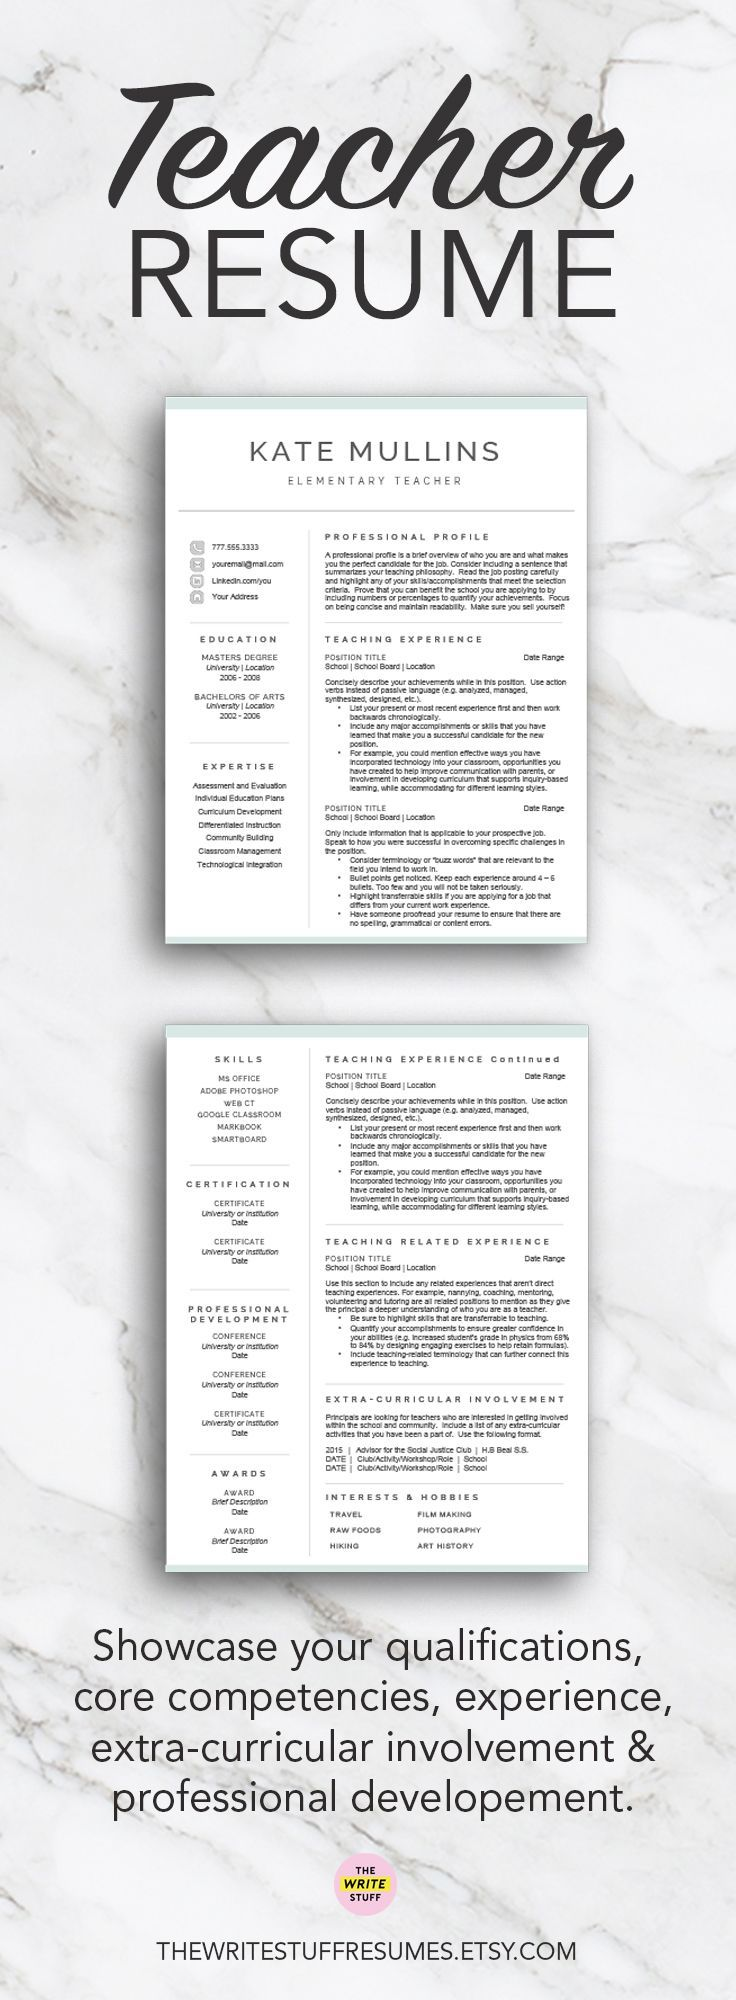 30 Best Images About Teacher Resume Templates On Pinterest